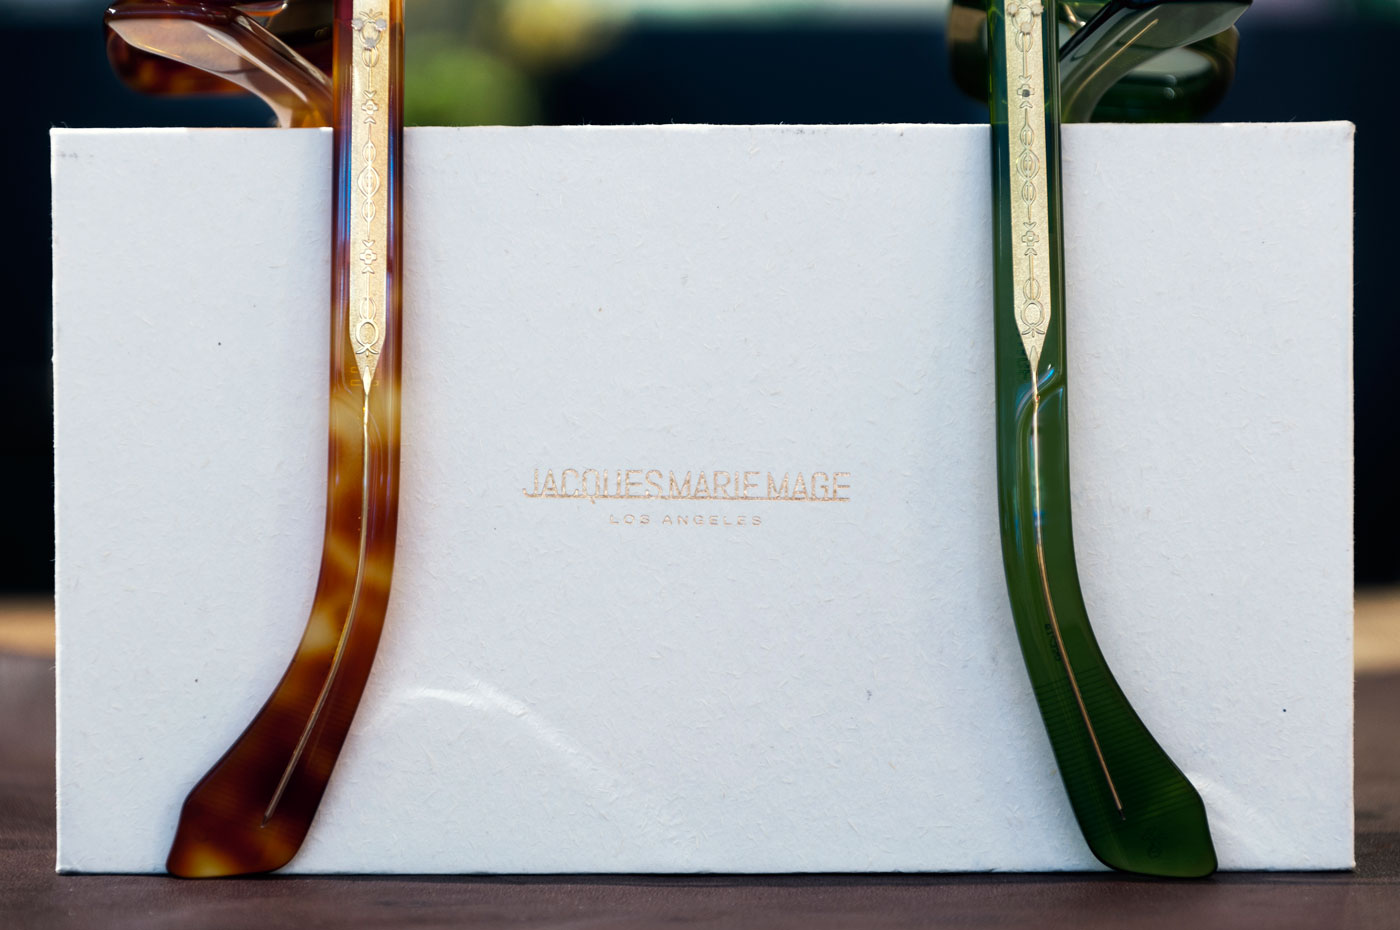 Jacques Marie Mage box